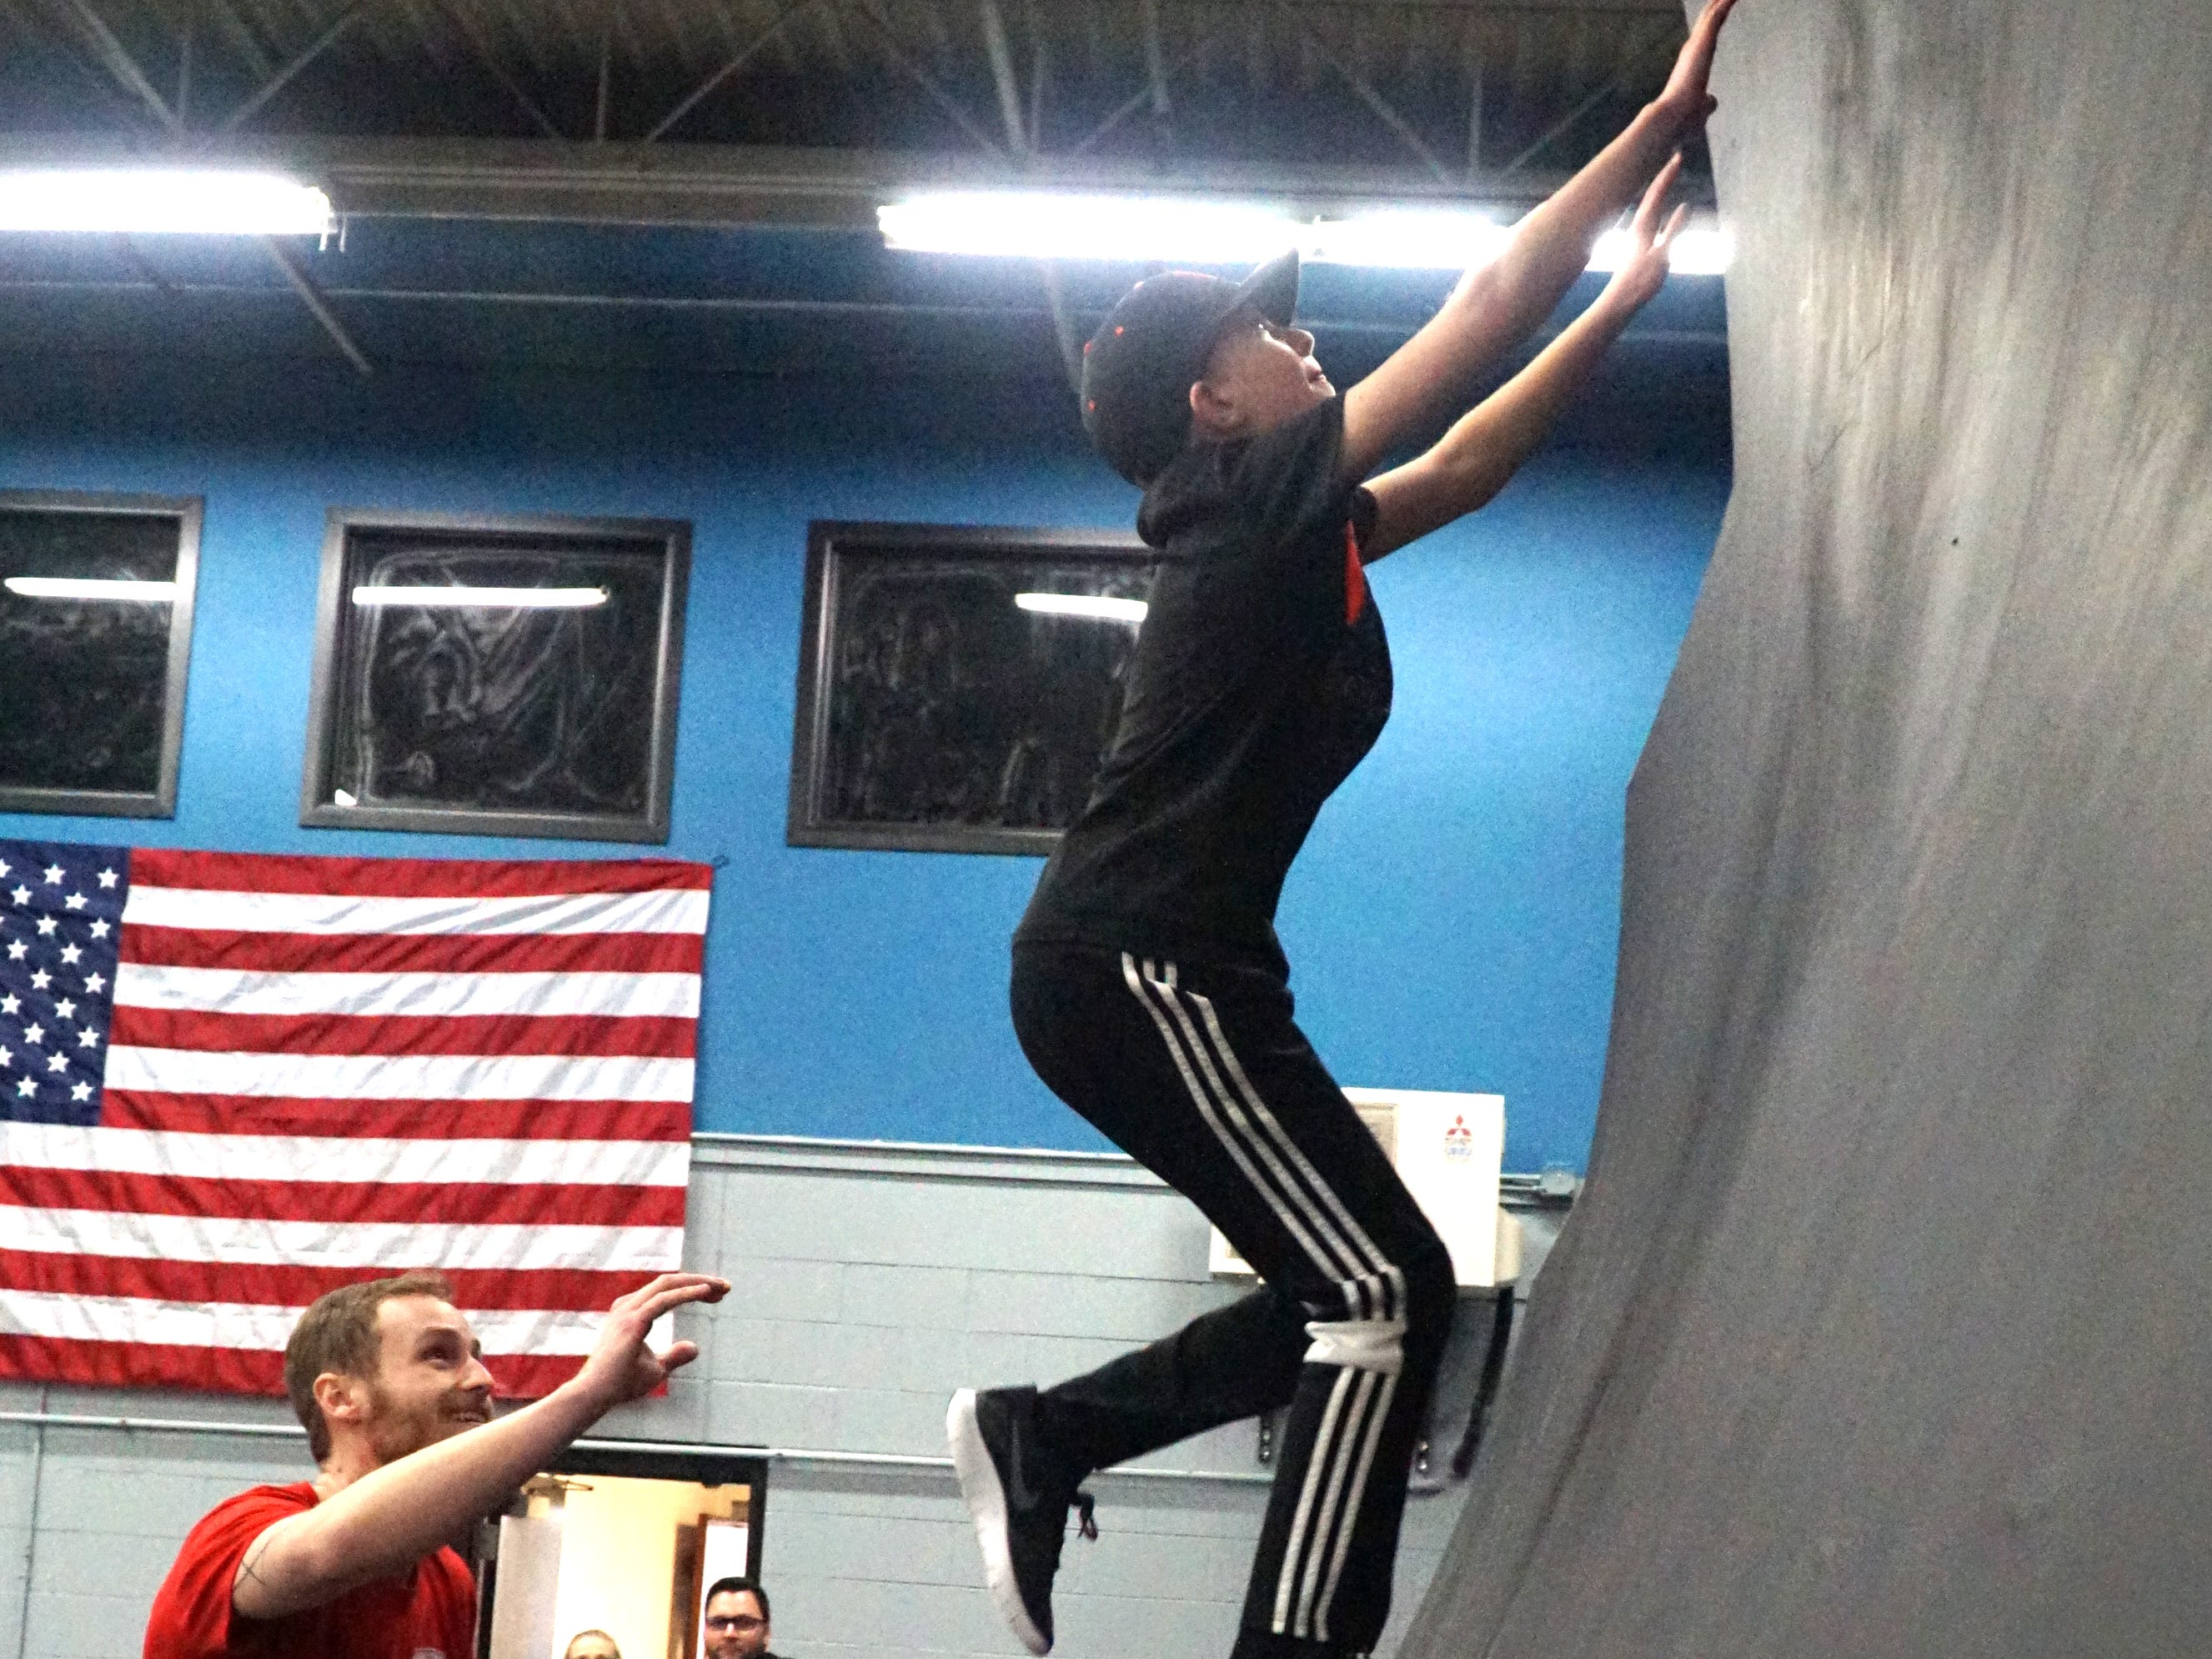 Sam Sherbrooke, left, an employee of The Edge Training Center in Plymouth - spots the progress of student Aidan Stover, 11, as he runs up the gym's curved wall.